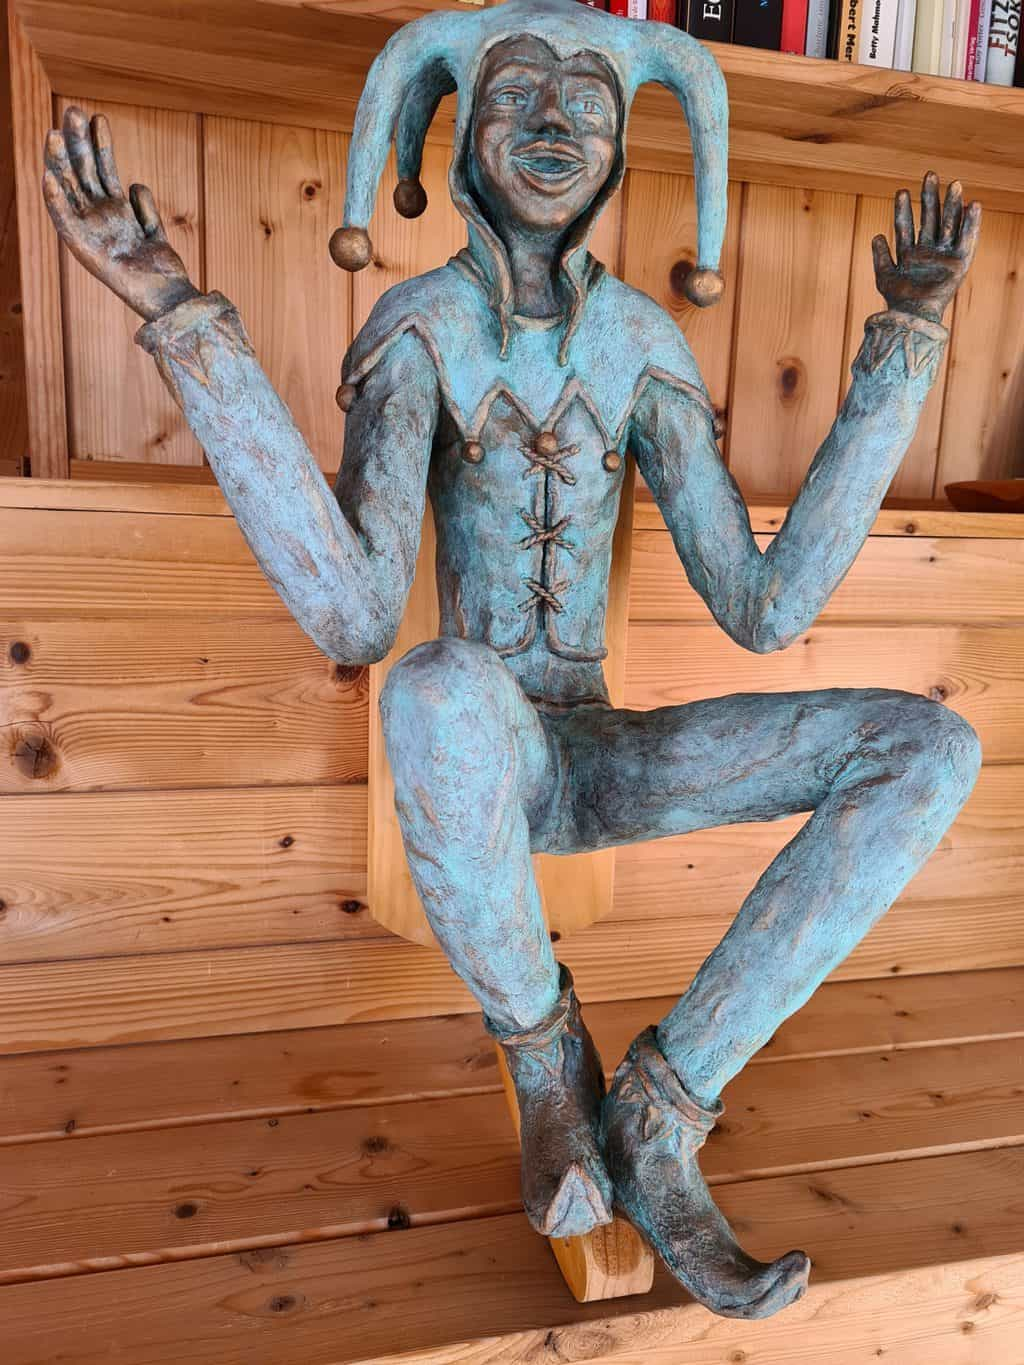 Jerk Konrad, a figure sculpture made with paper mache clay